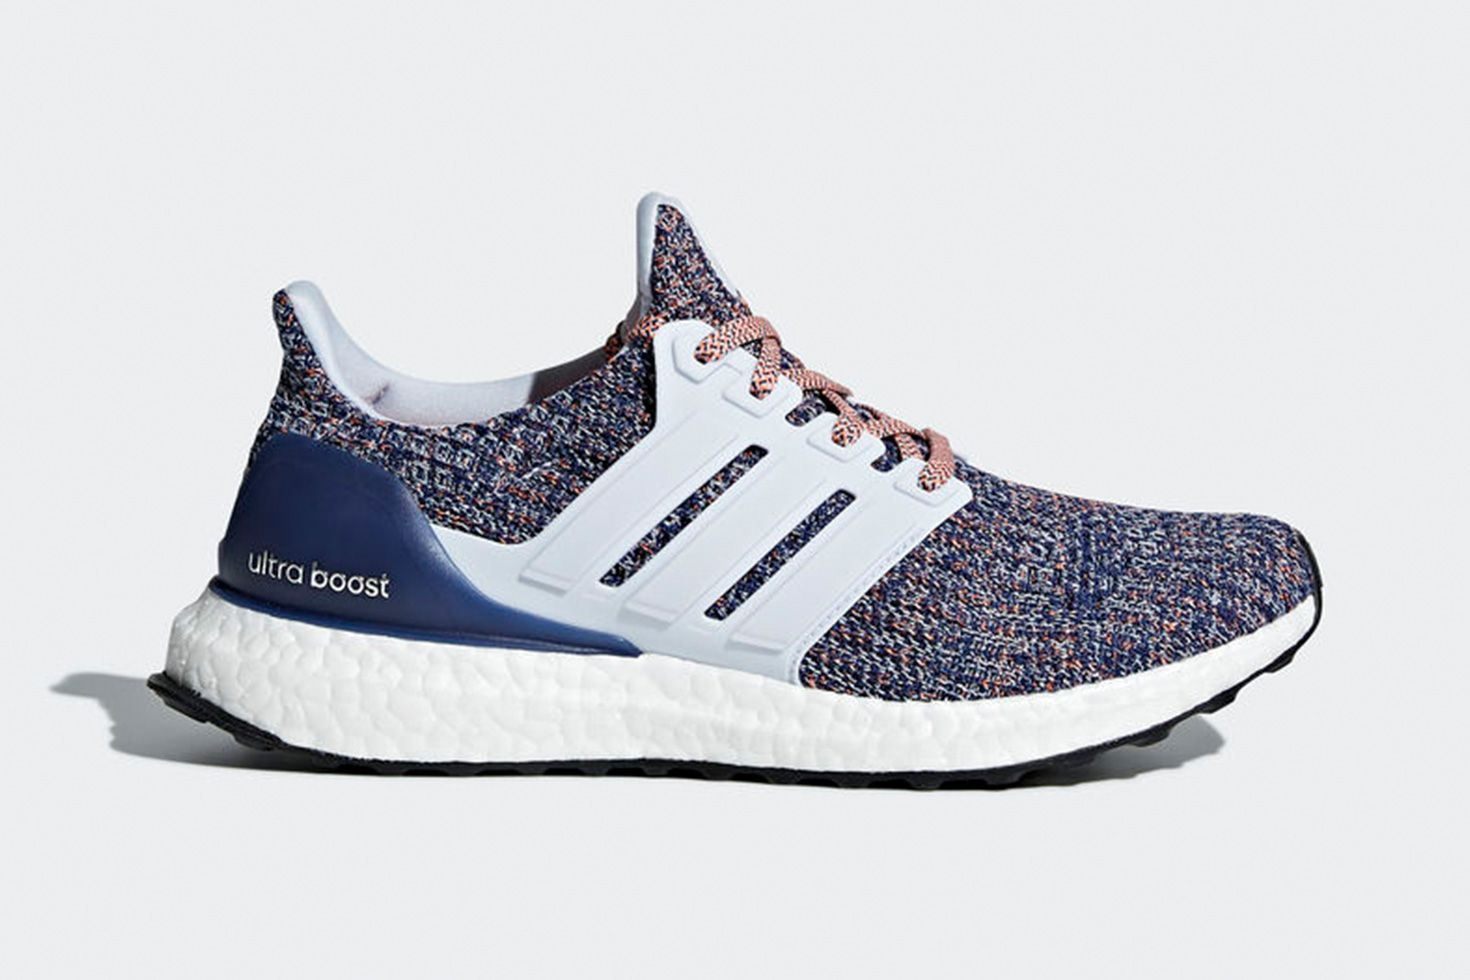 best shoes for running on sand